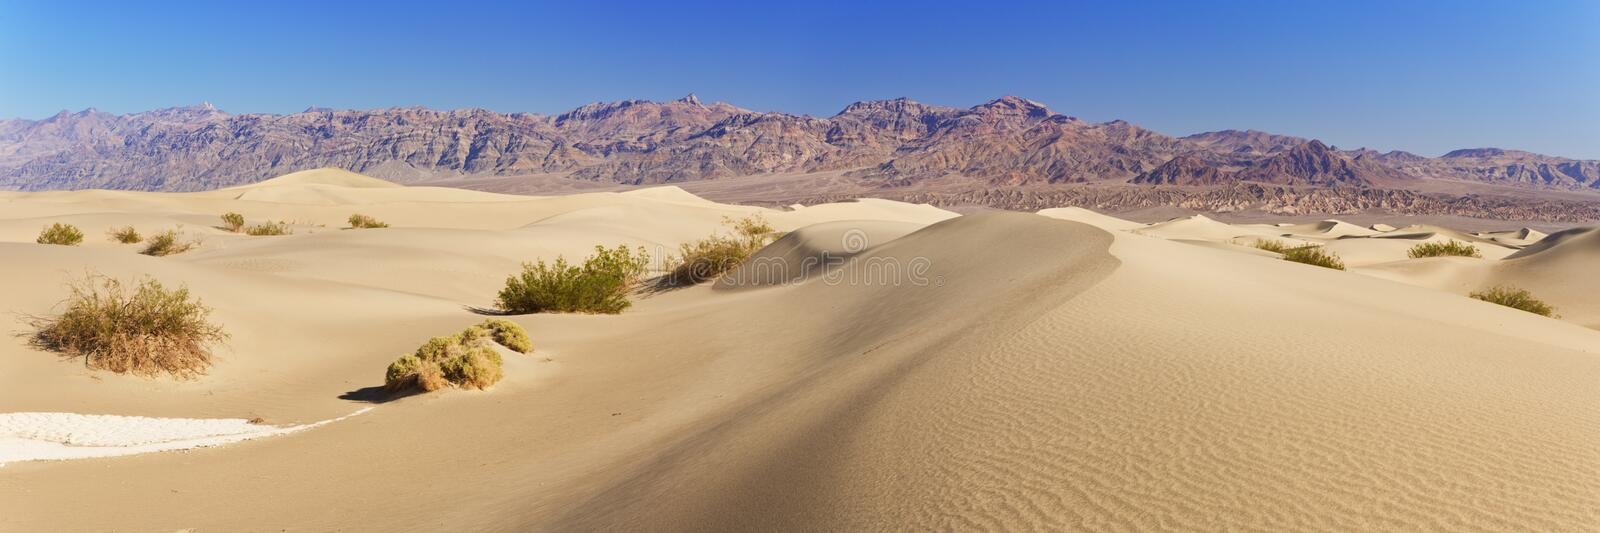 Dunes de sable plat Mesquite dans le parc national de Death Valley photos stock